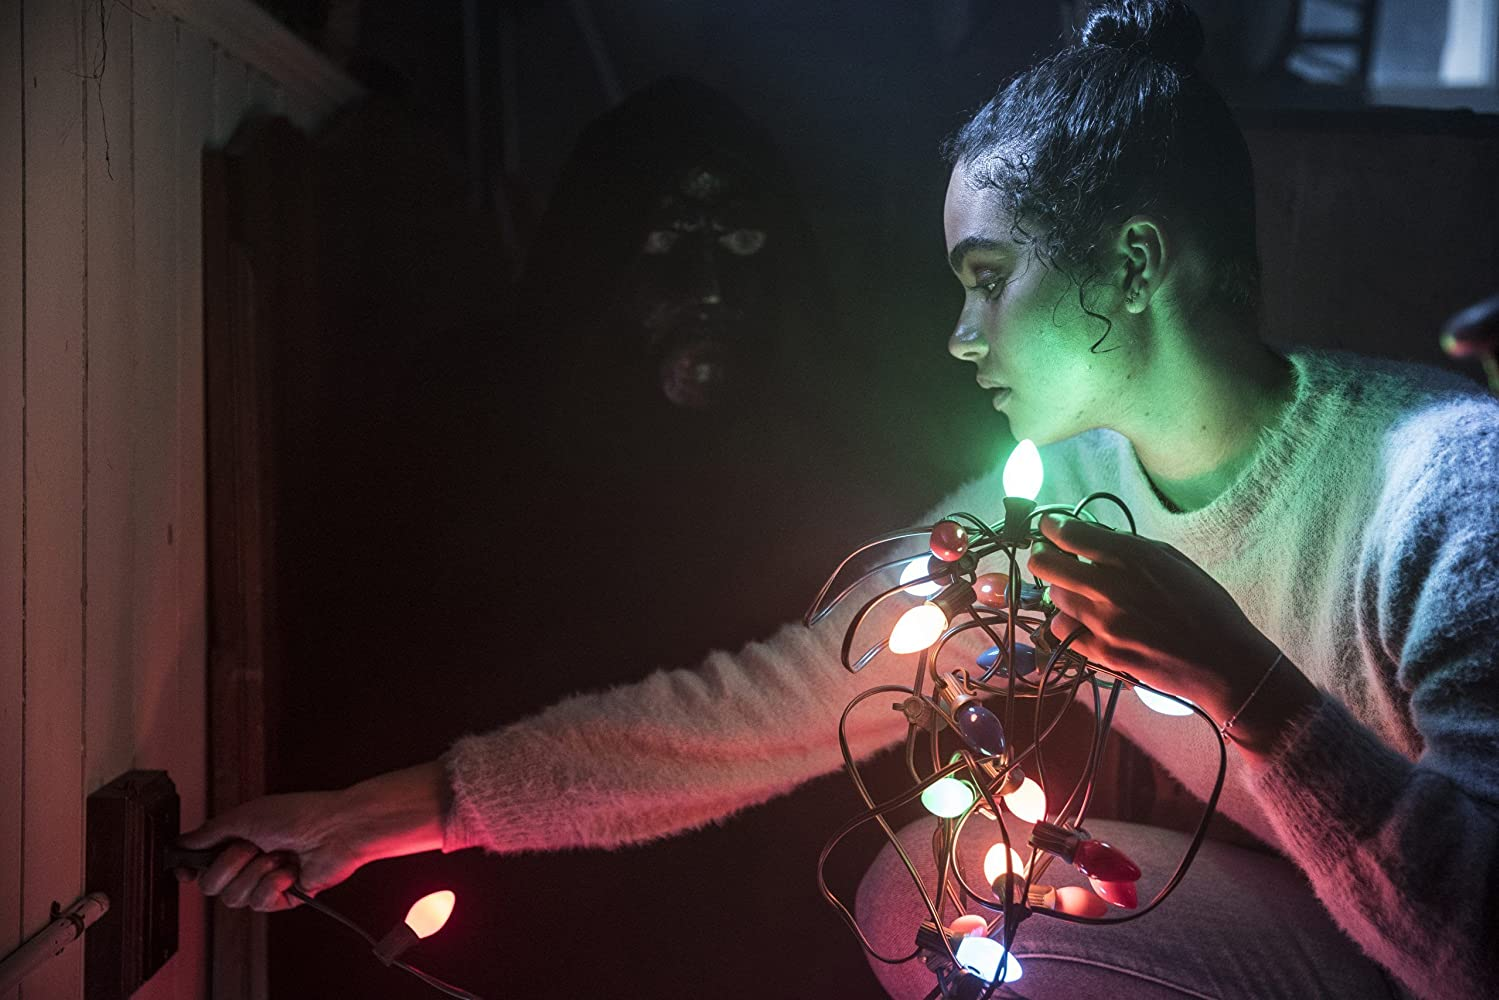 Jonny McBride and Brittany O'Grady in Black Christmas (2019)